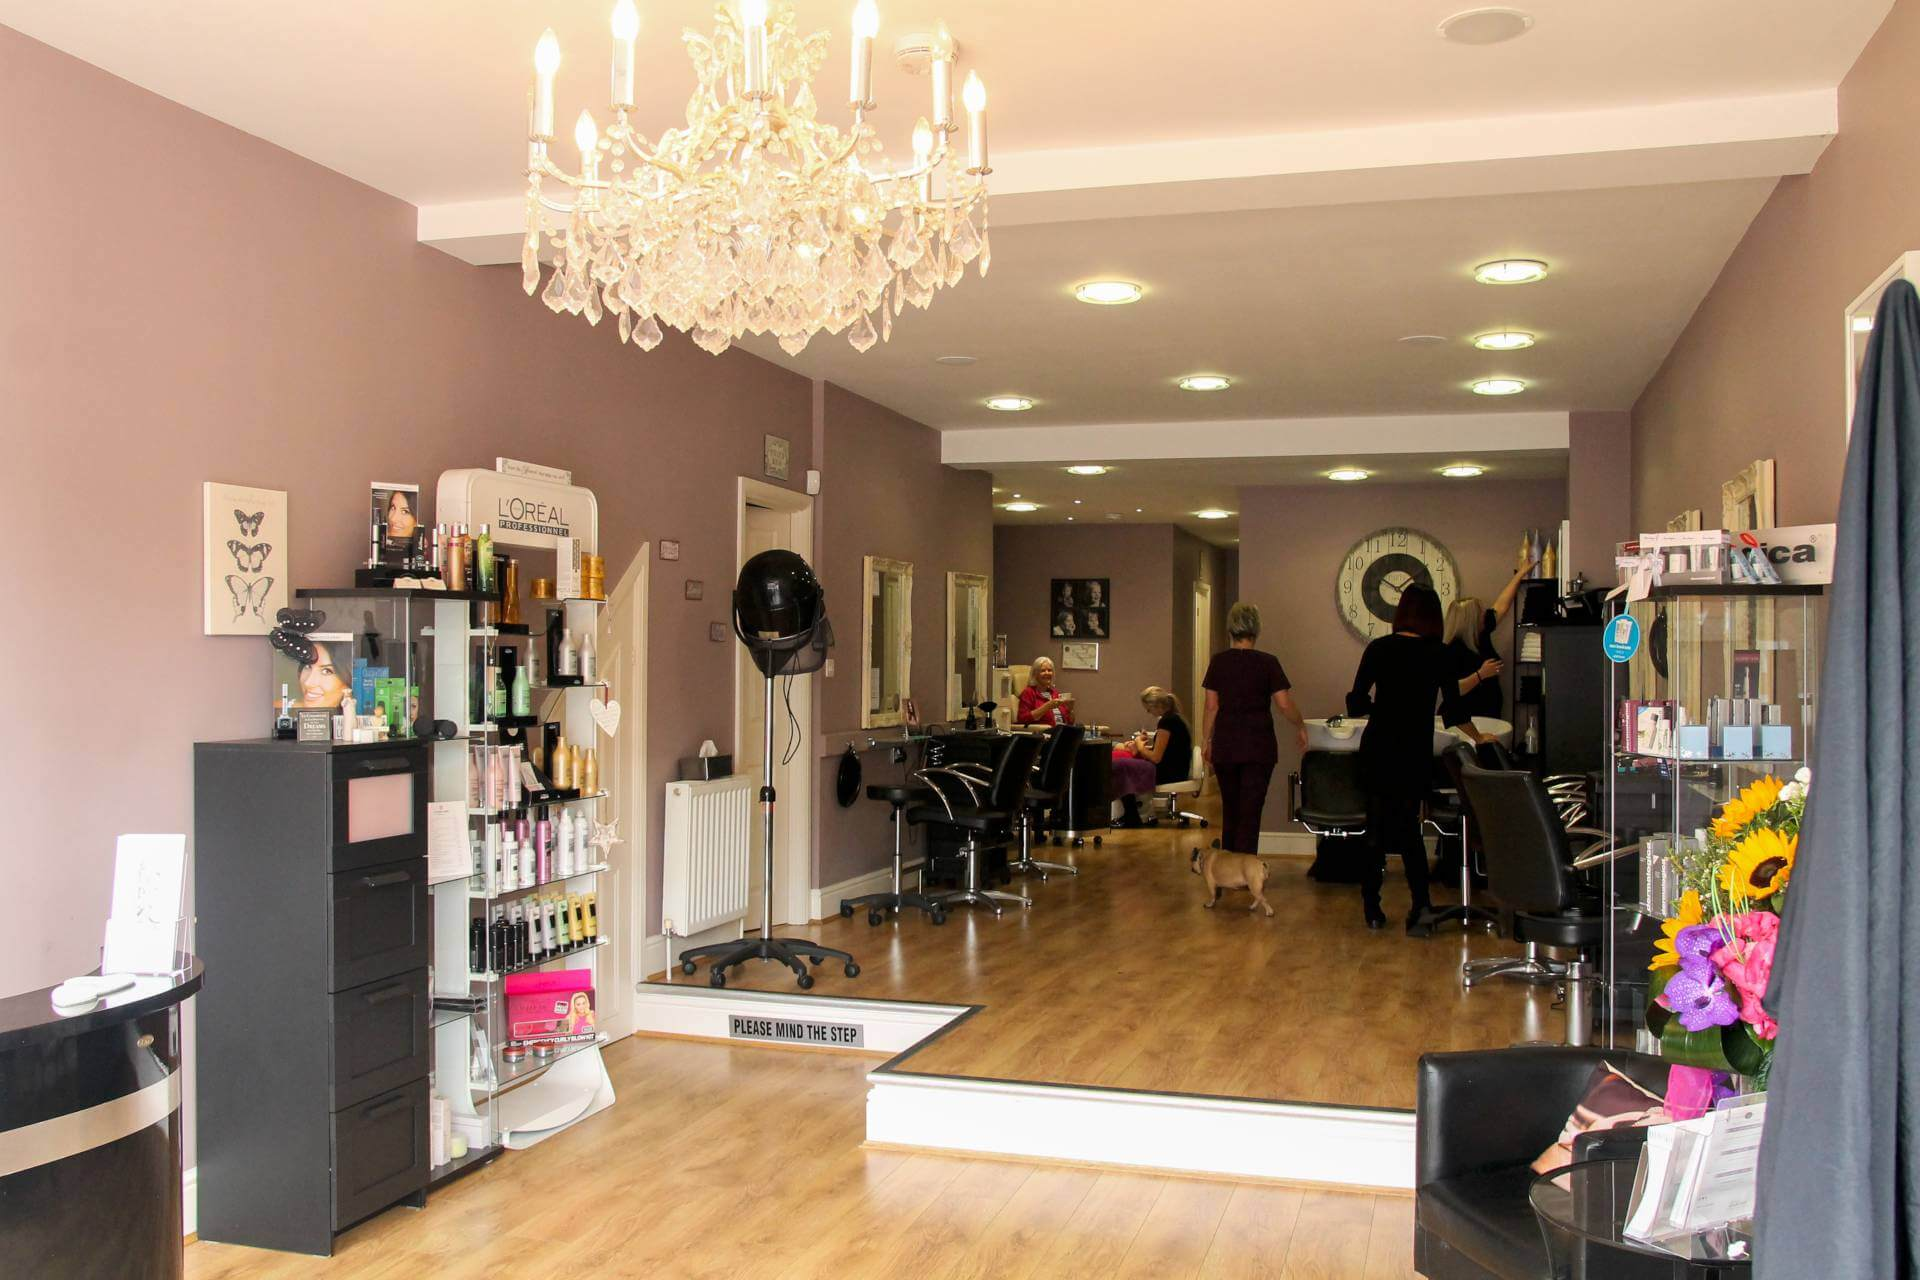 internal-view-of-serenity-hair-and-beauty-salon-